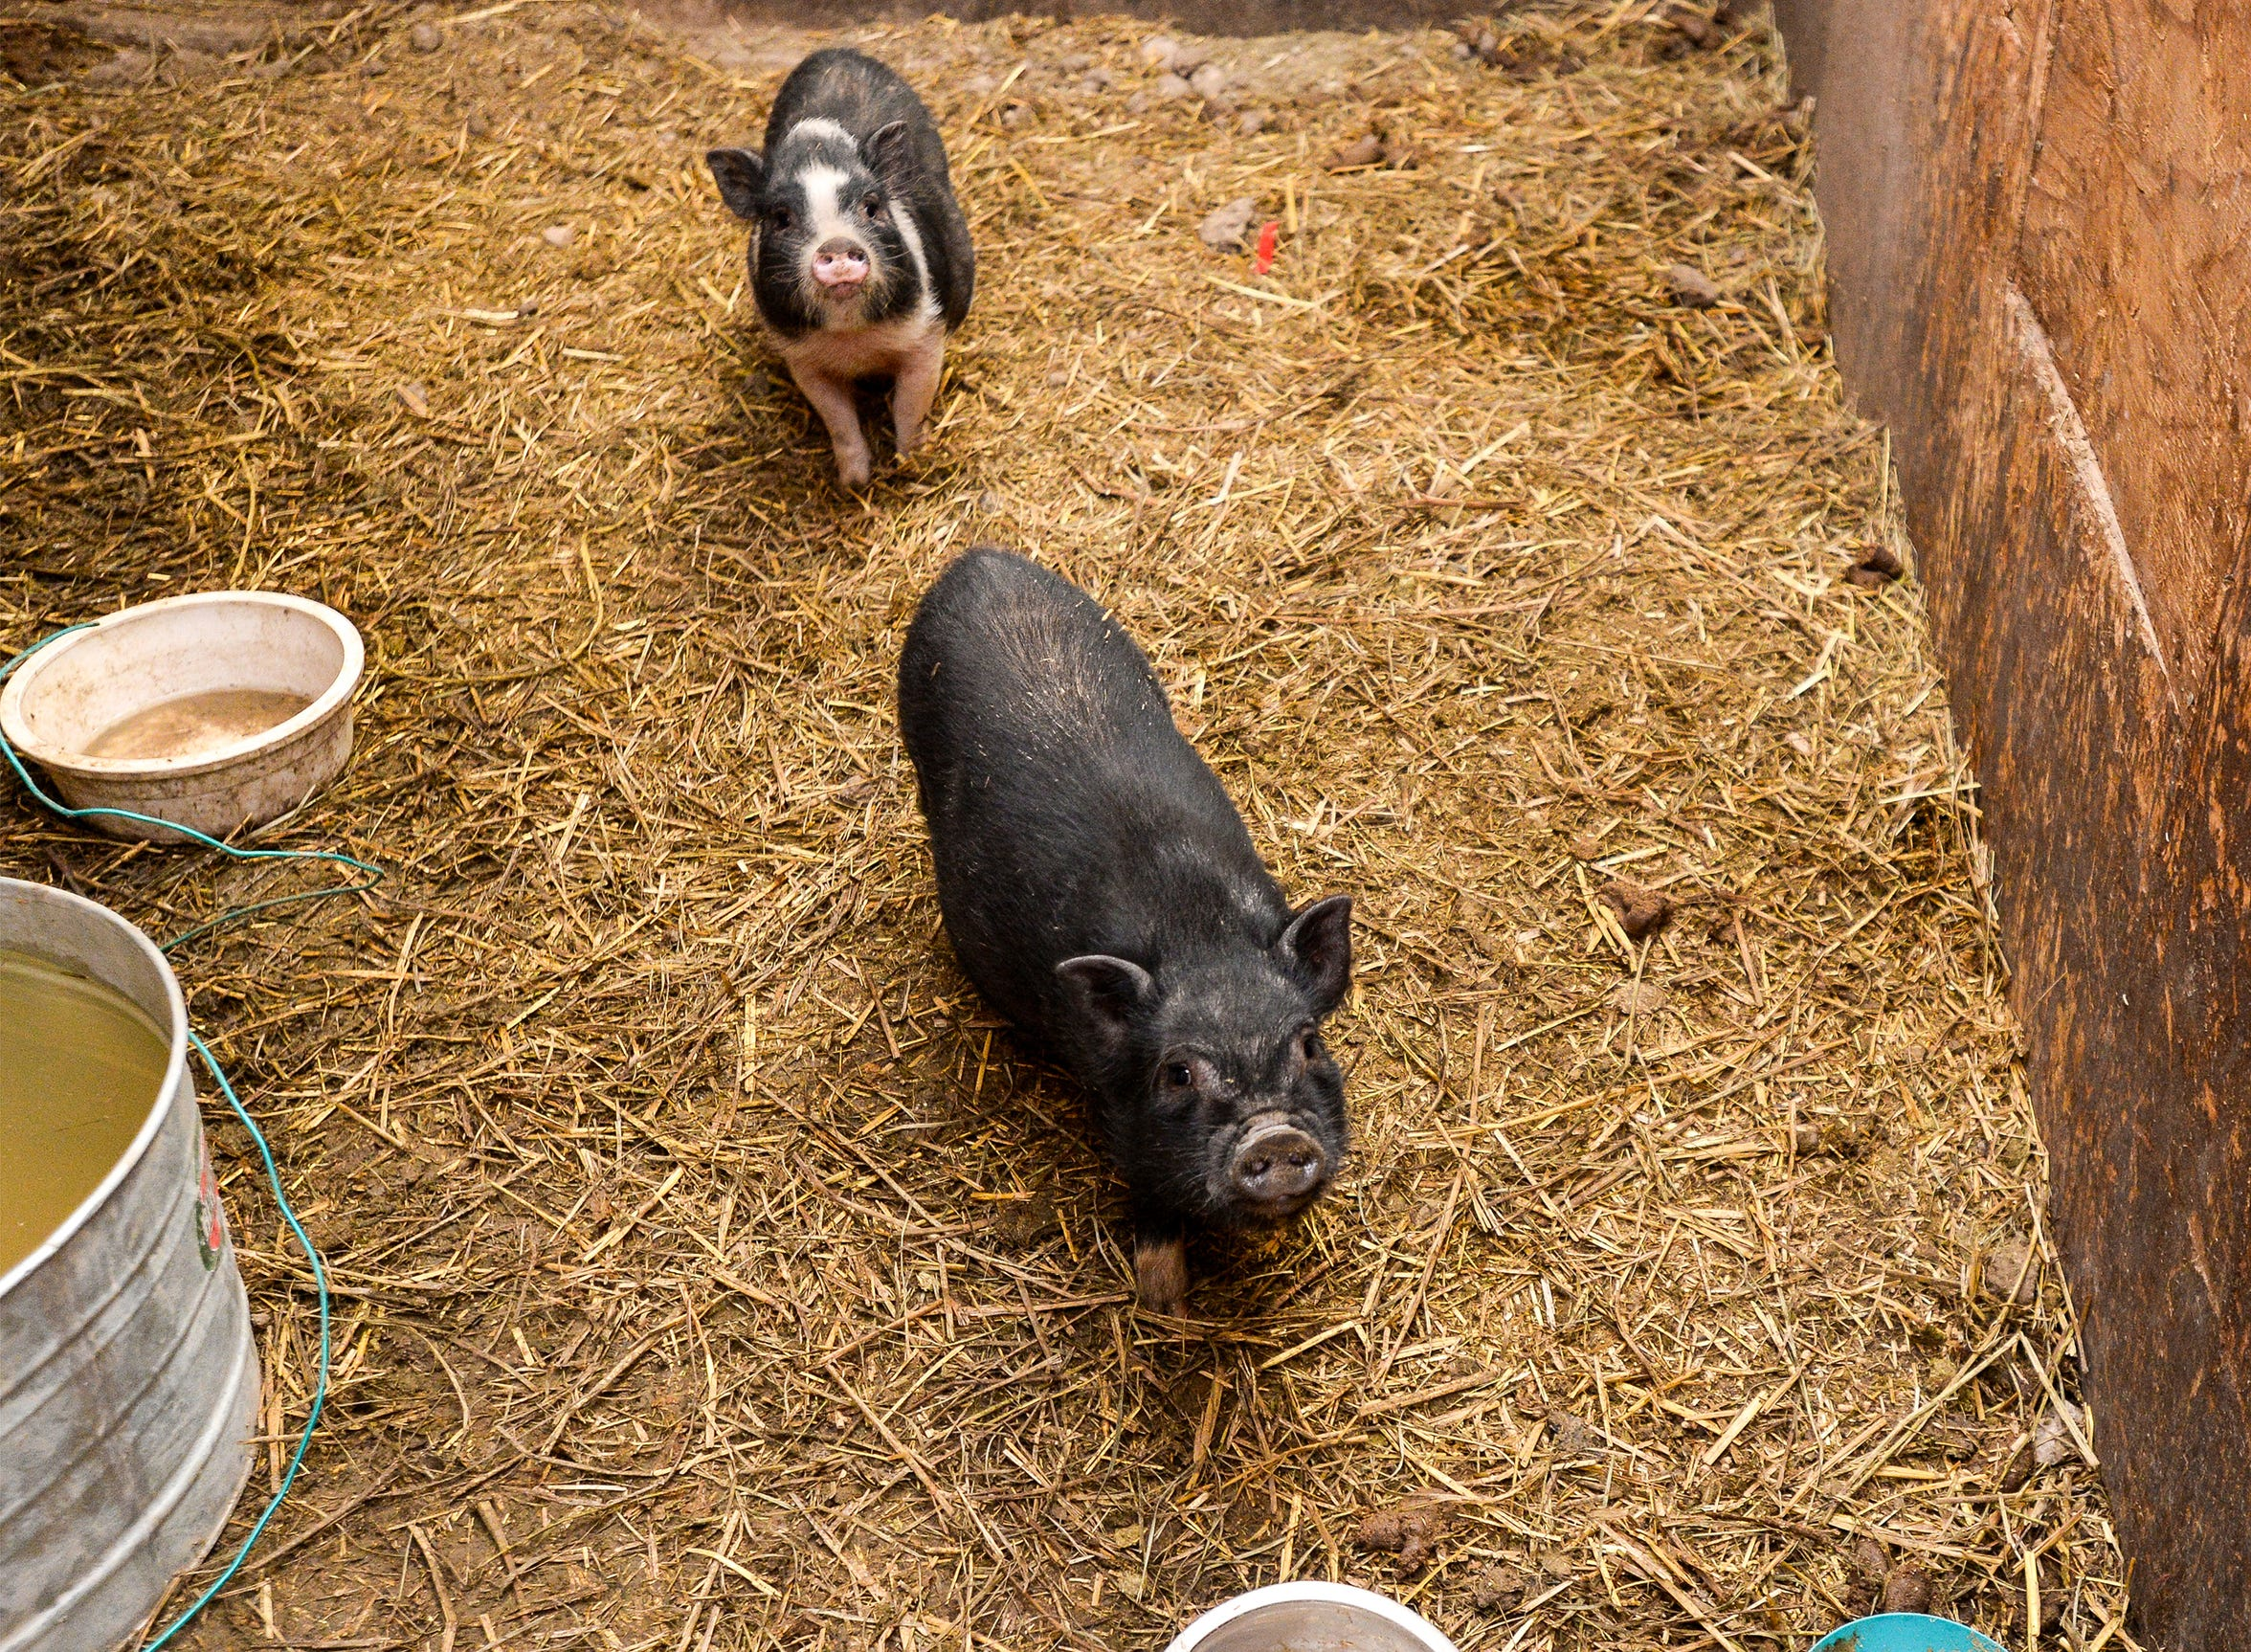 Pot-bellied pigs are some of the 176 animals seized from Pamela Jo Polejewski, who has been charged with animal cruelty.